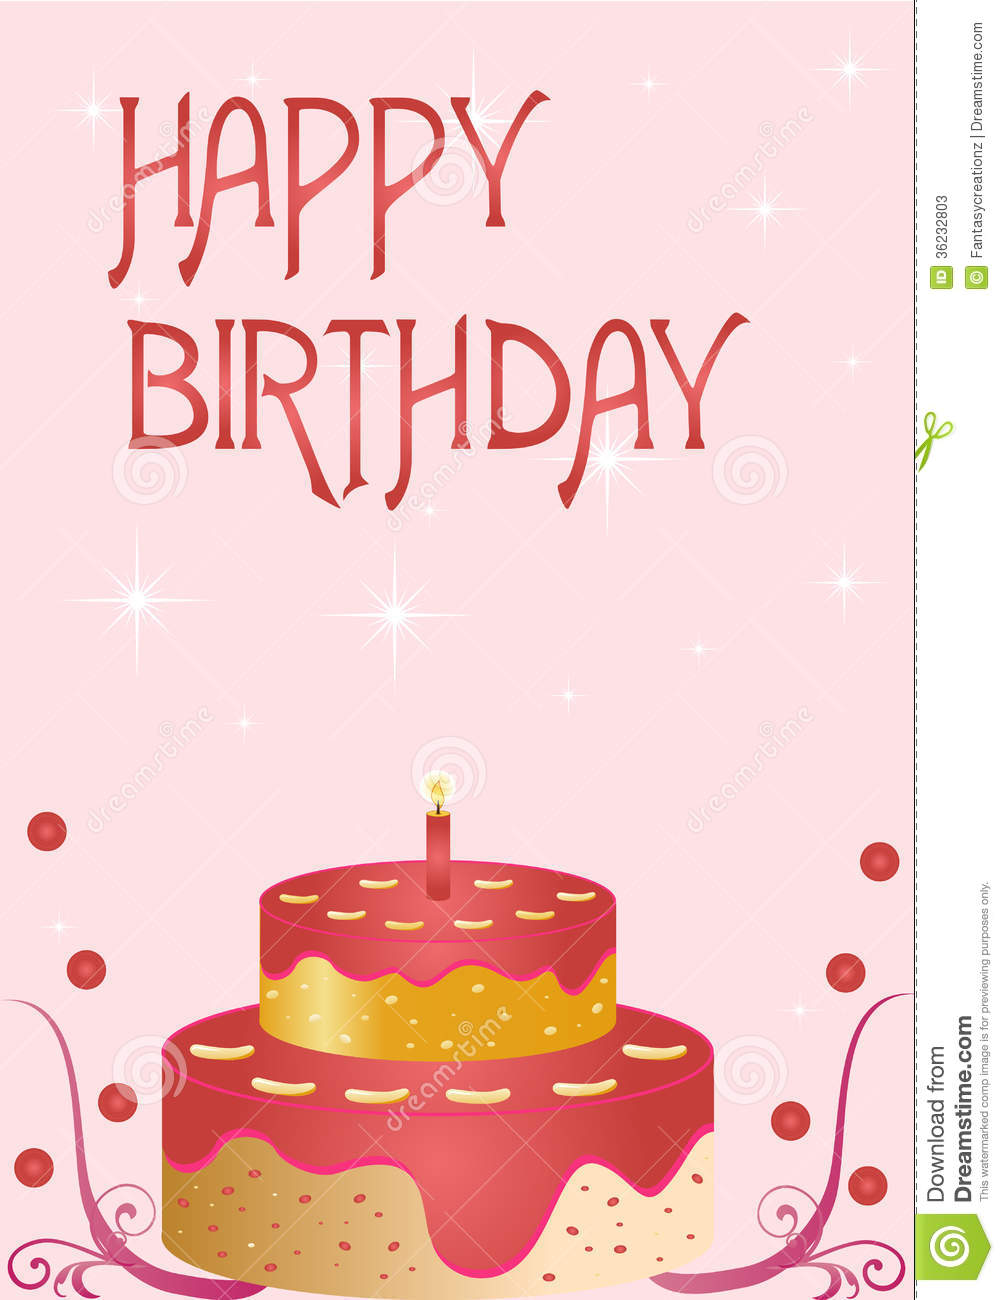 birthday greeting card background design ; happy-birthday-card-background-design-cake-36232803